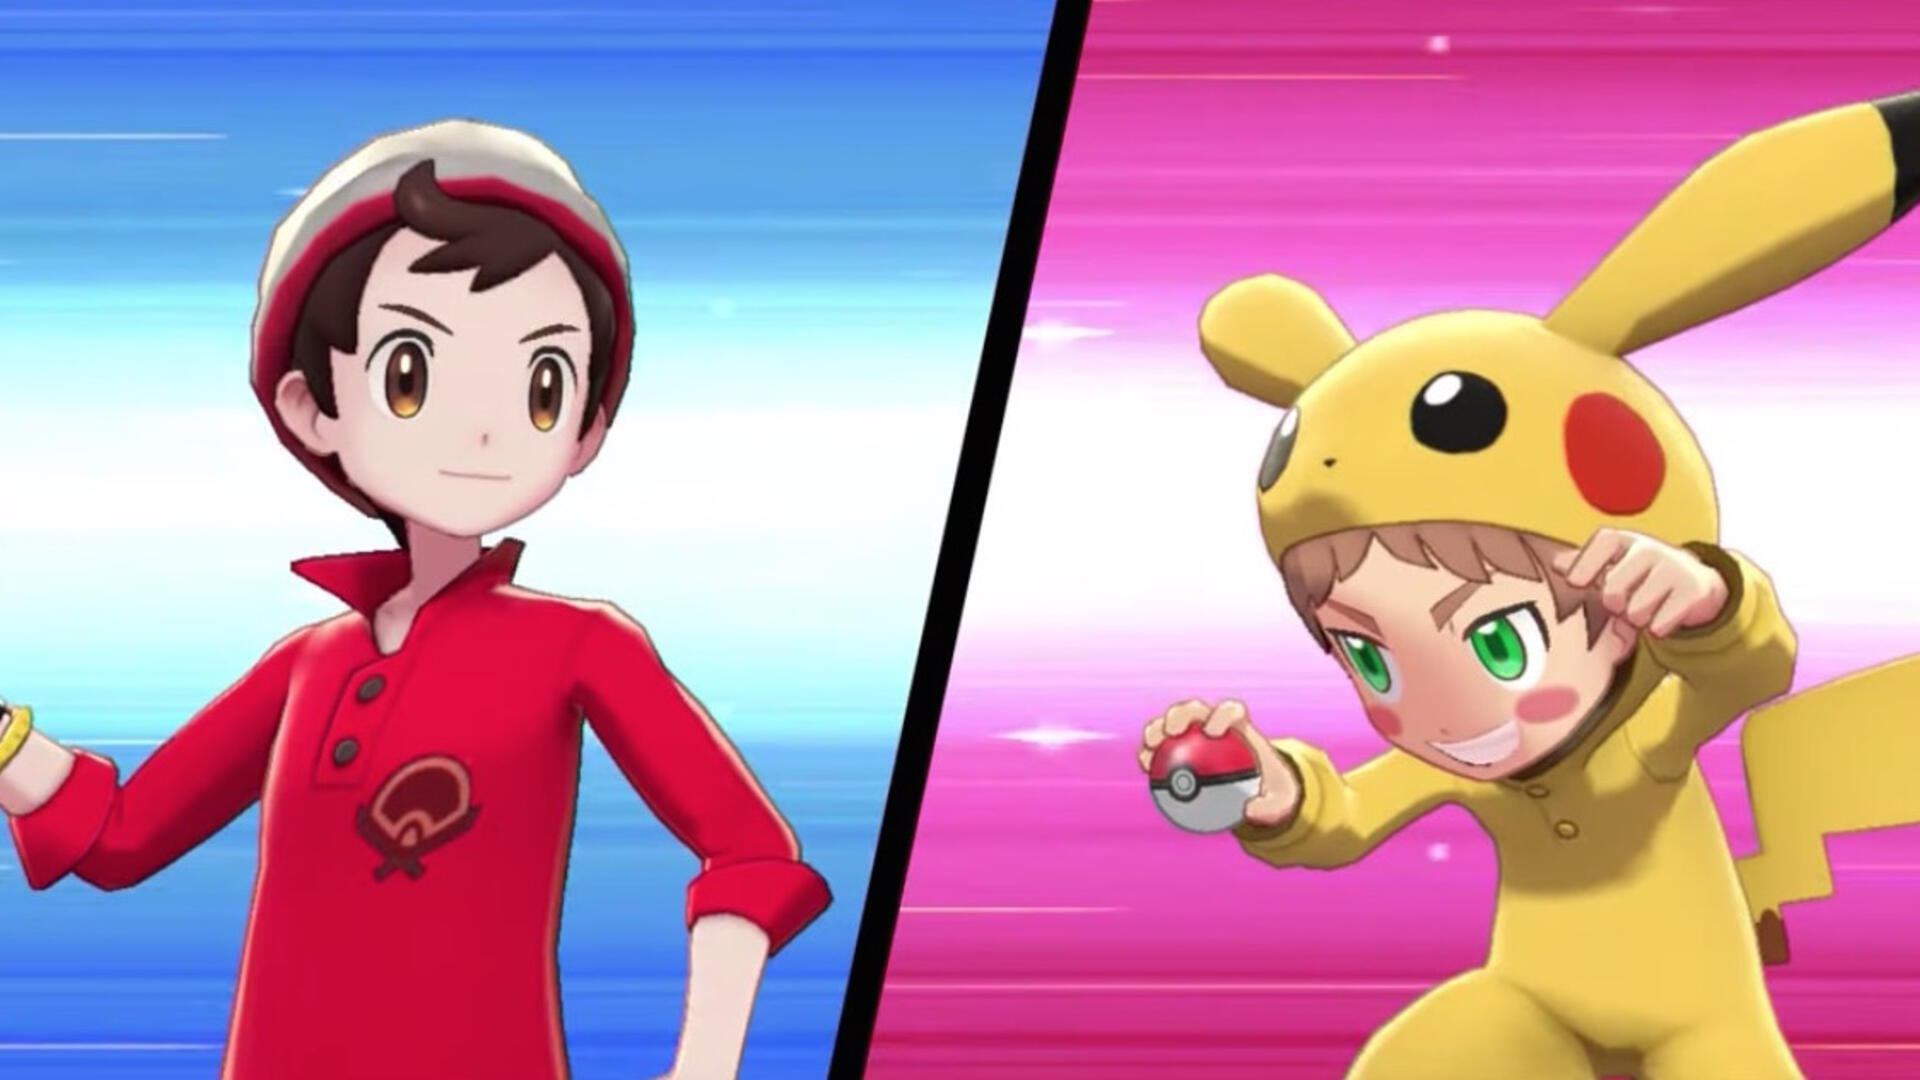 The Last Japanese Trailer for Pokemon Sword and Shield Keeps its Reveals Short and Sweet